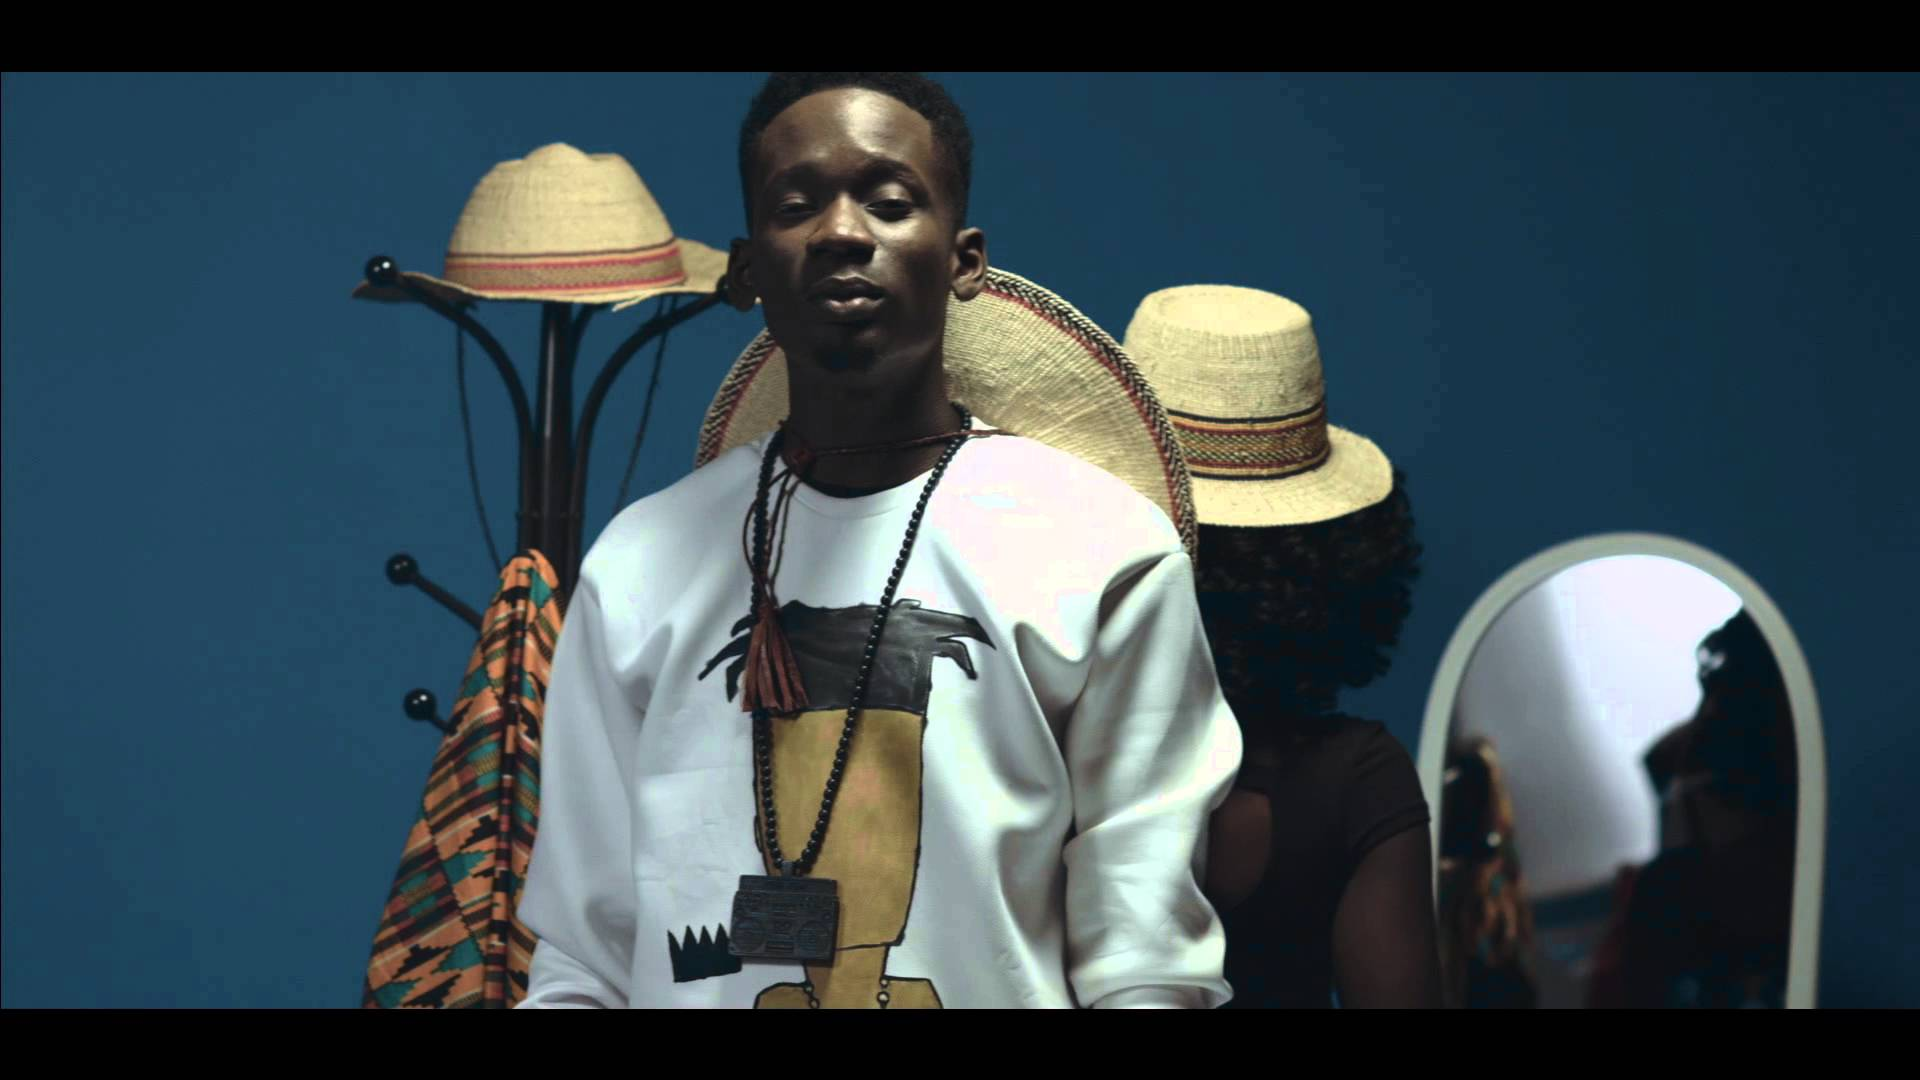 Nigerian Artiste, Mr Eazi // Source: Youtube